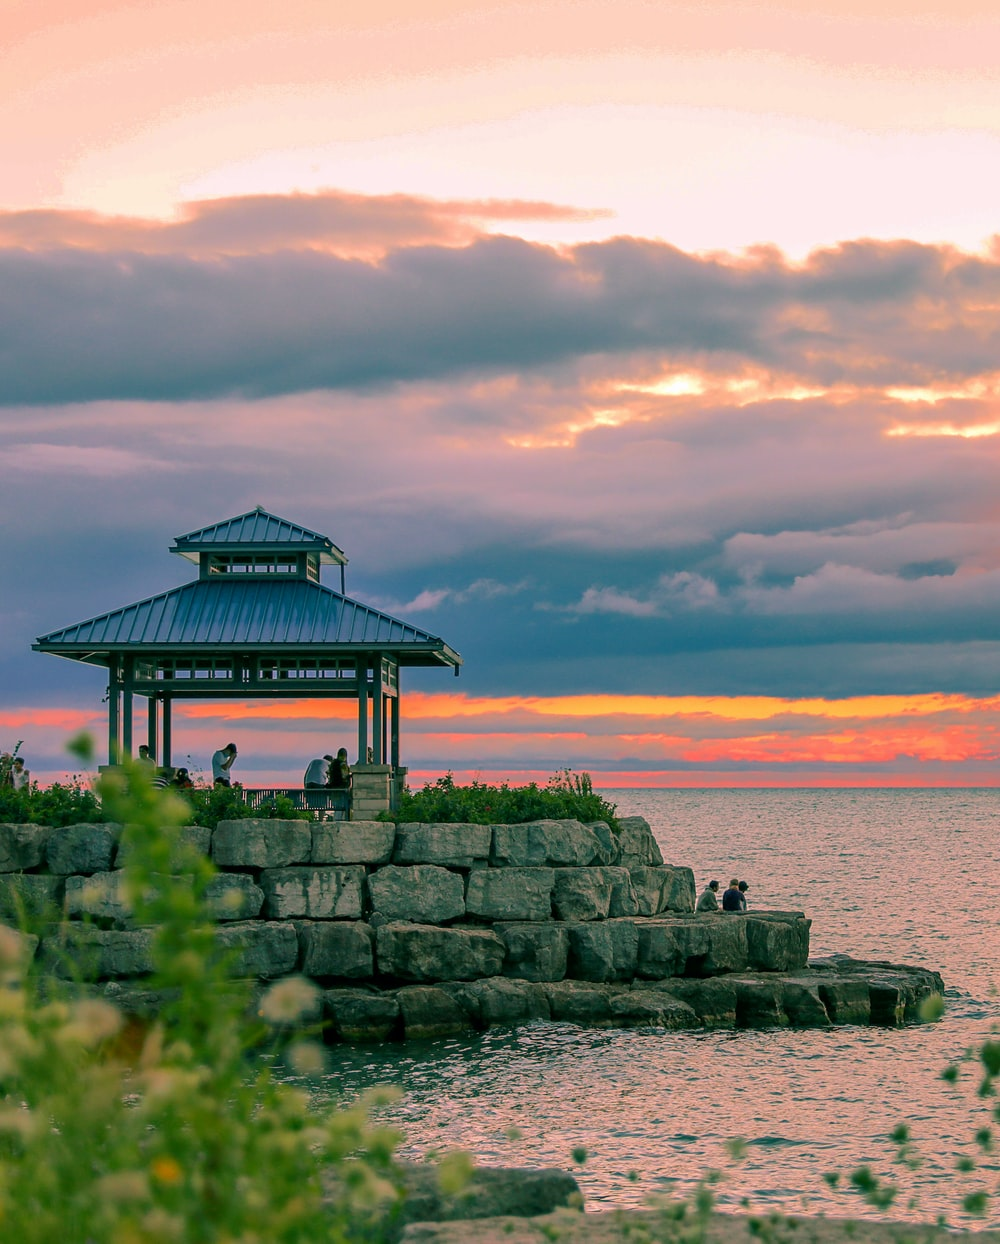 brown wooden gazebo on gray rock formation near body of water during daytime